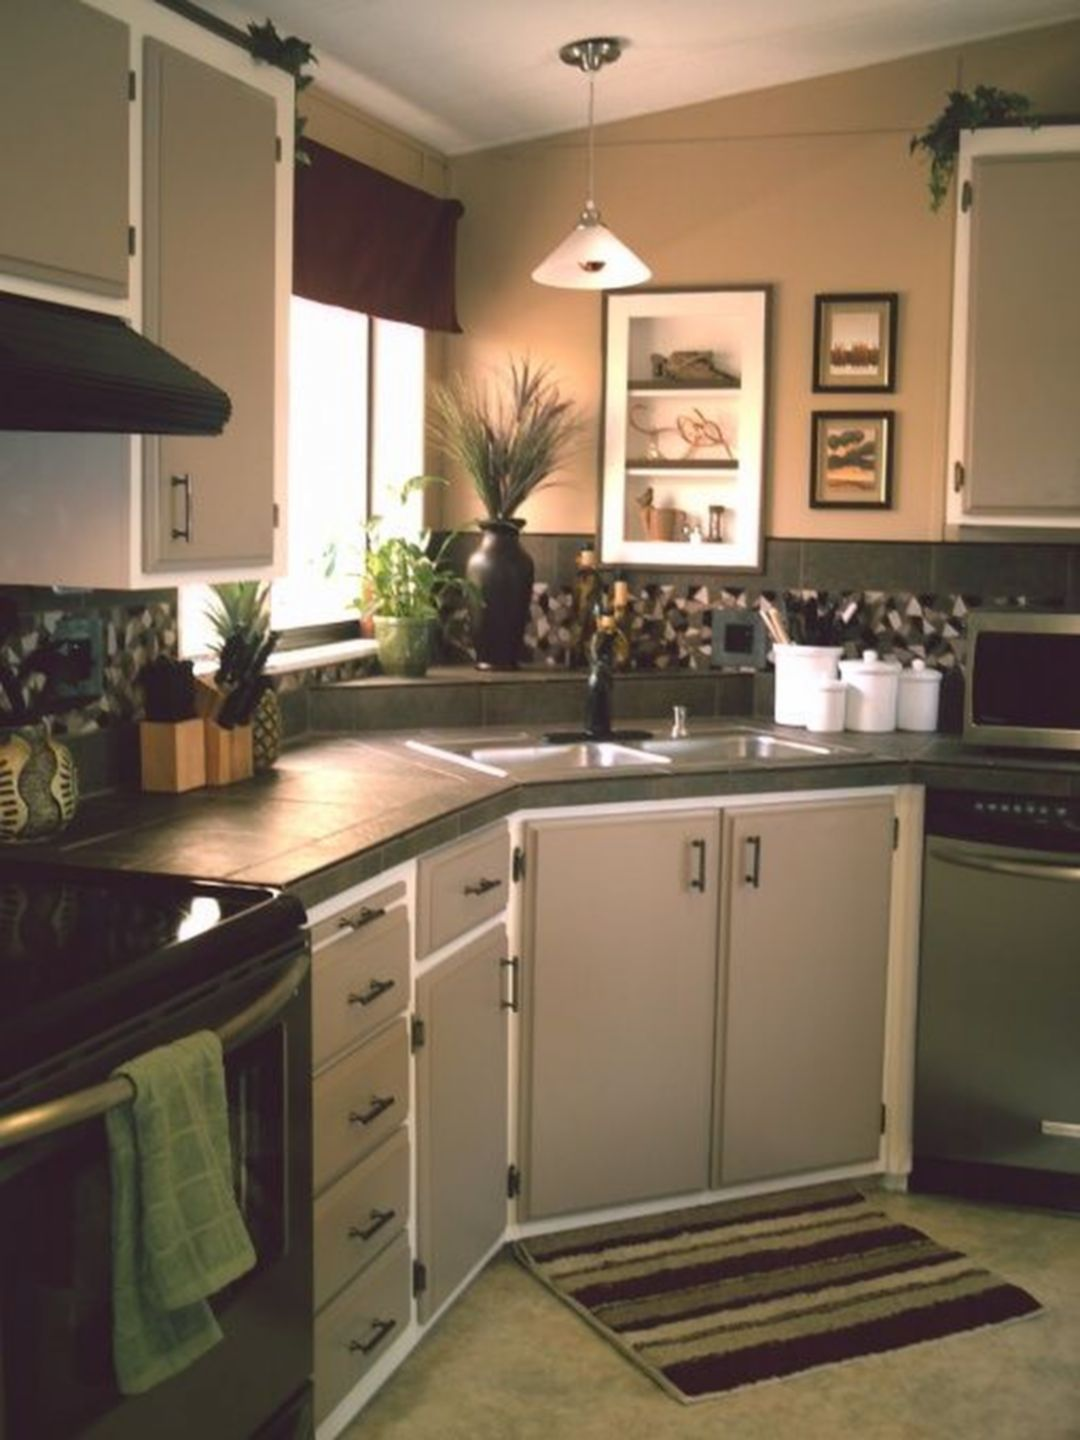 BEST TINY KITCHEN DESIGN IDEAS   Kitchen remodel small, Mobile ...